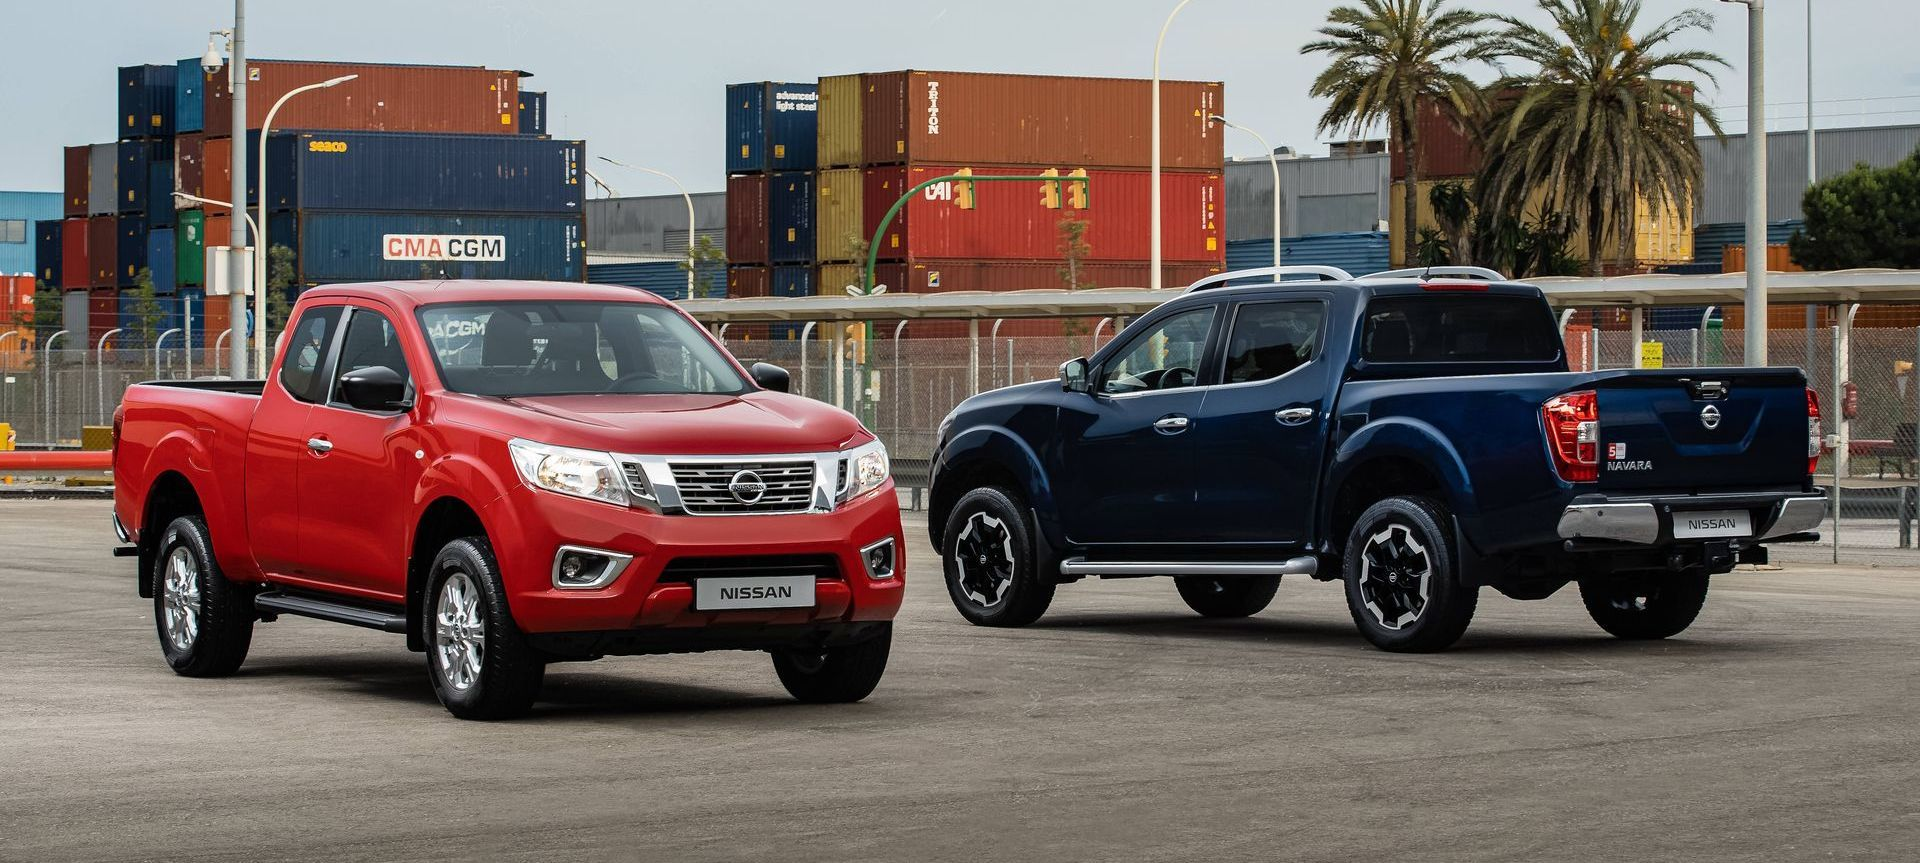 Nissan Navara King Cab (red) And Double Cab (blue)